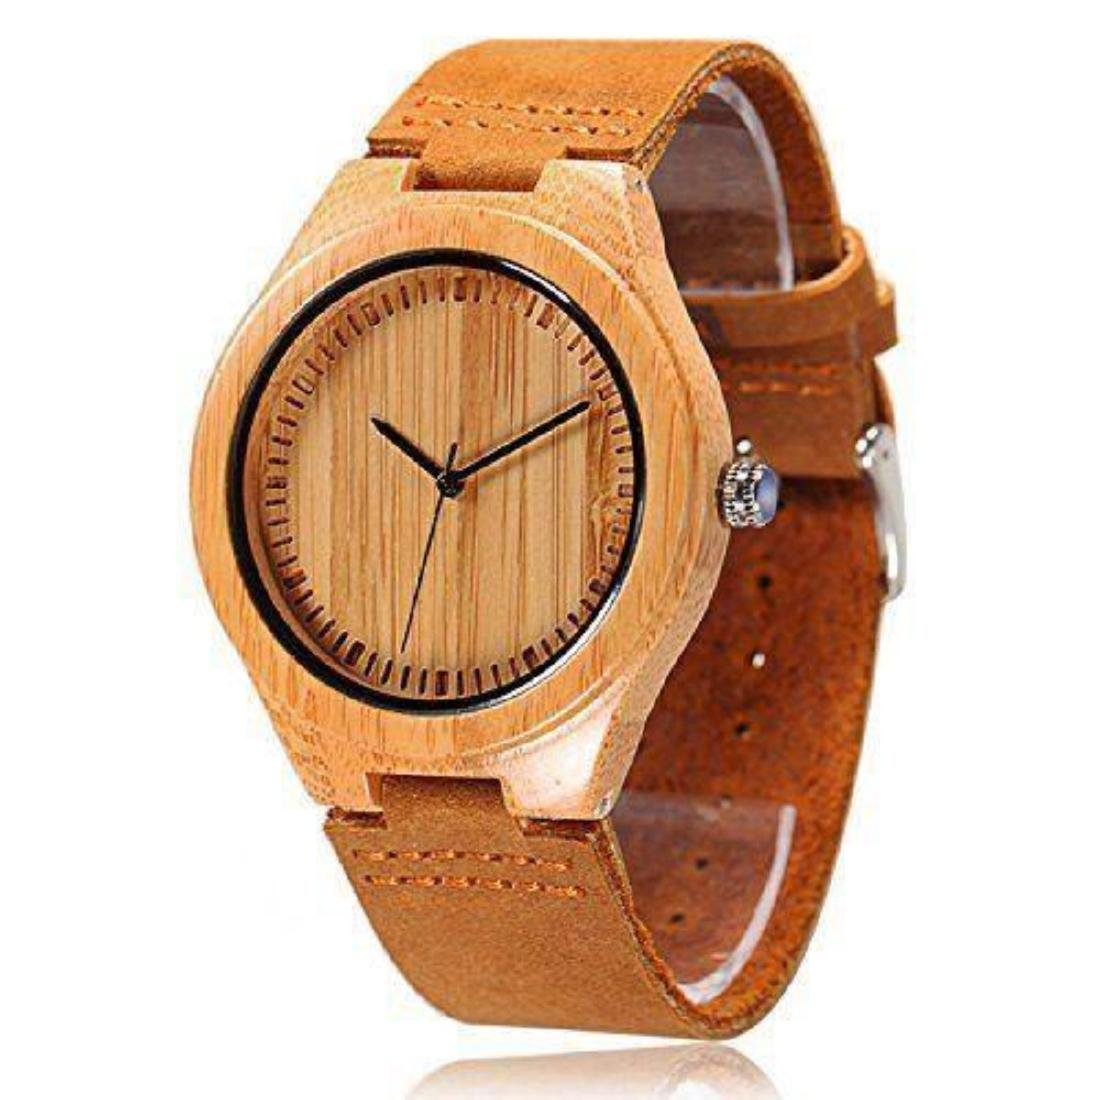 Cucol Wrist Watches Men's Bamboo Wooden With Brown - 5